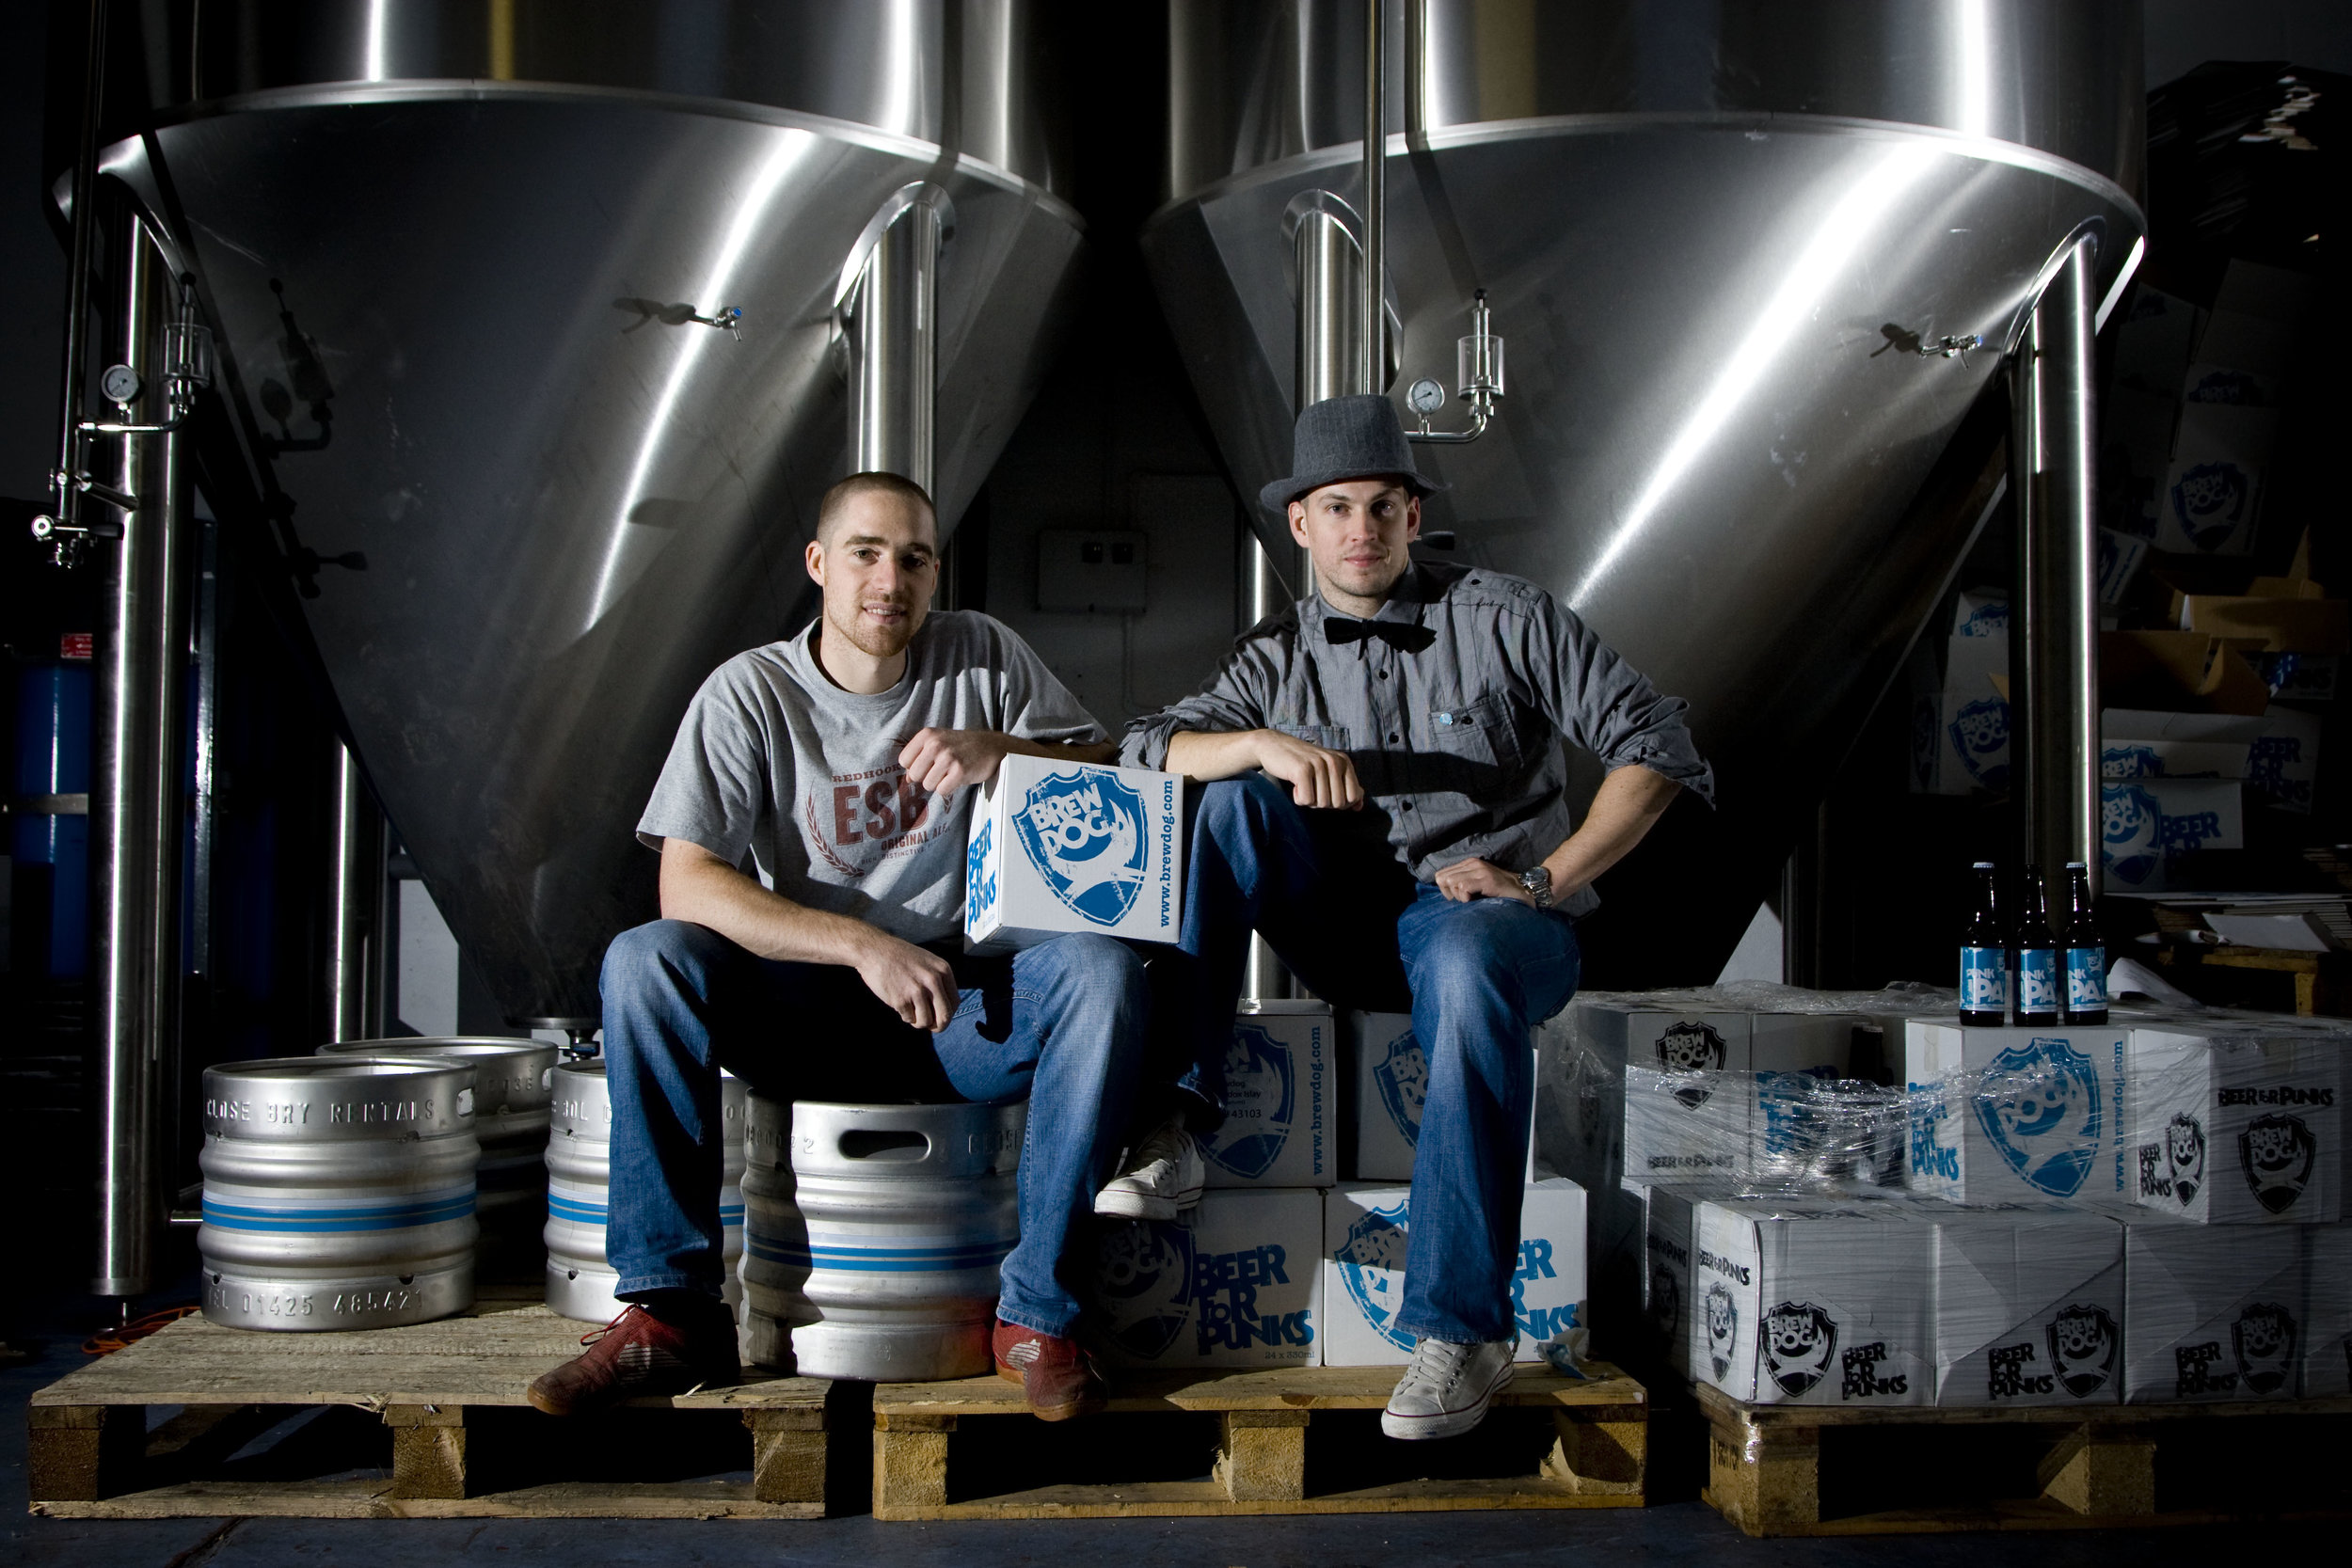 Never mind the VCs: Brewdog's 'Equity for Punks' scheme cuts out venture capitalists - The Telegraph